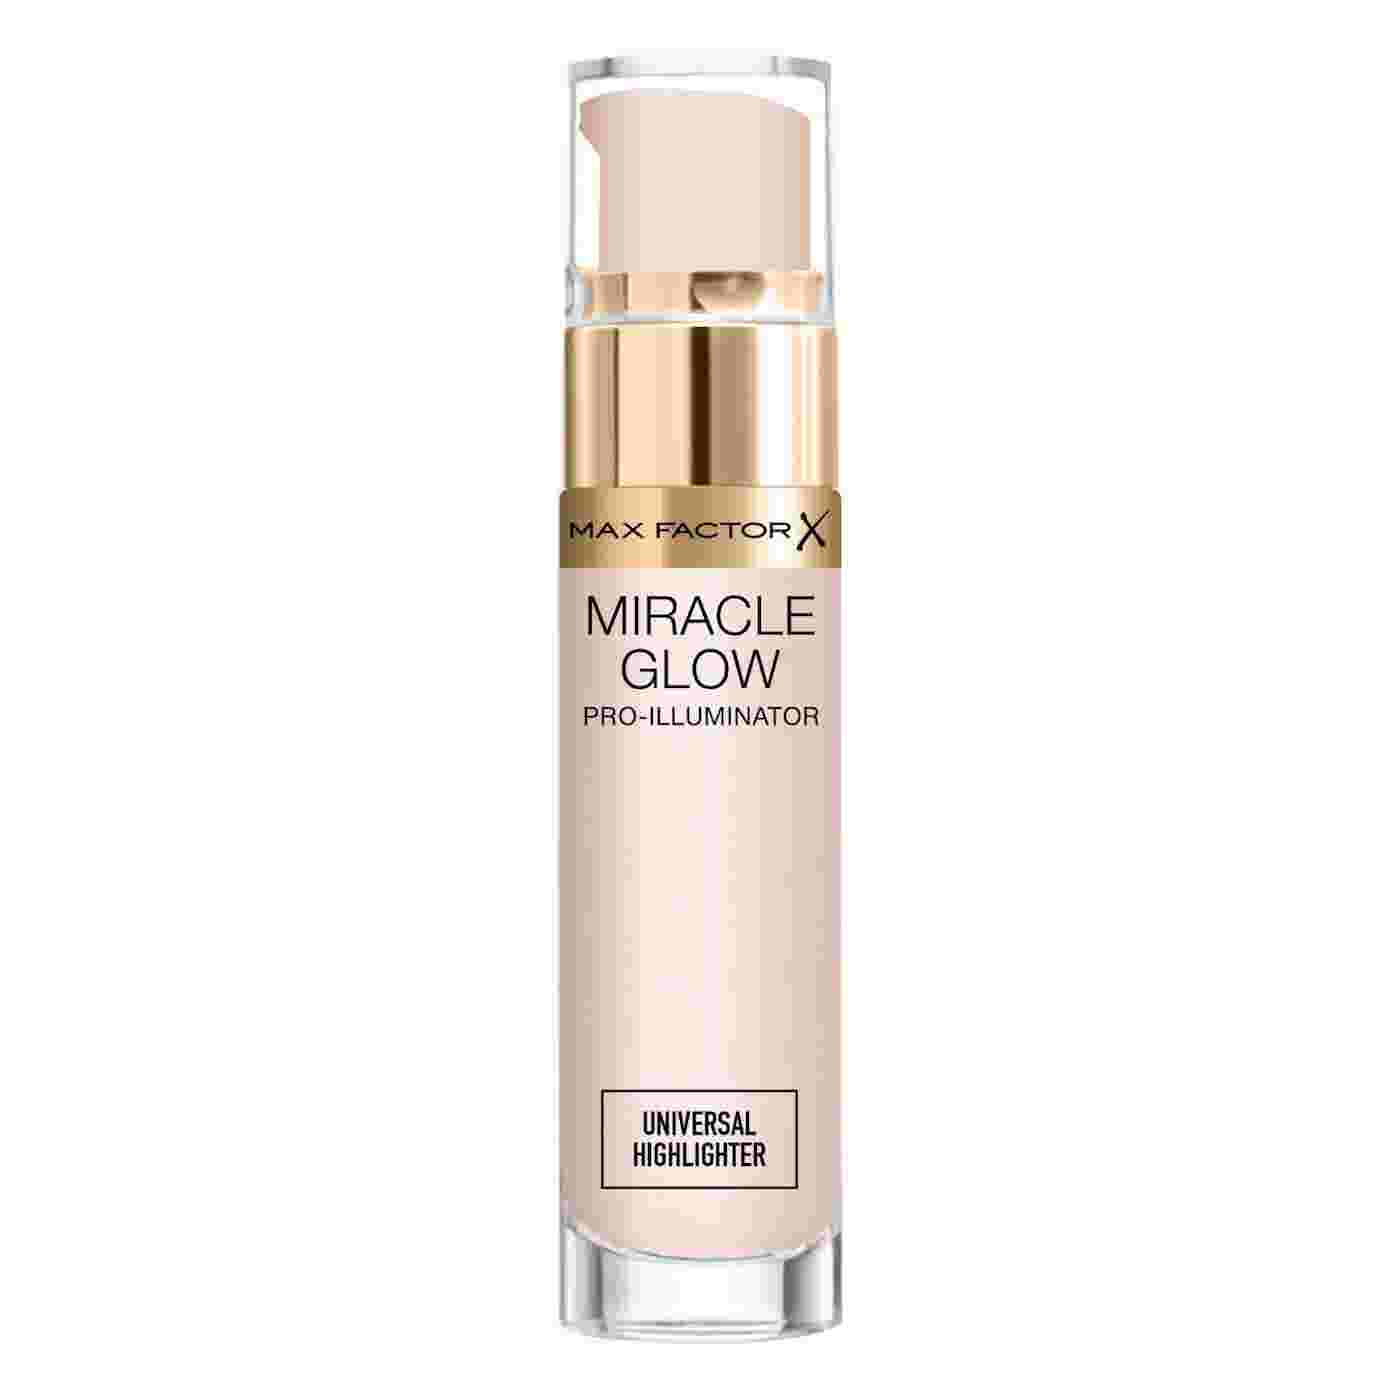 Max Factor Miracle Glow Pro Universal Highlighter